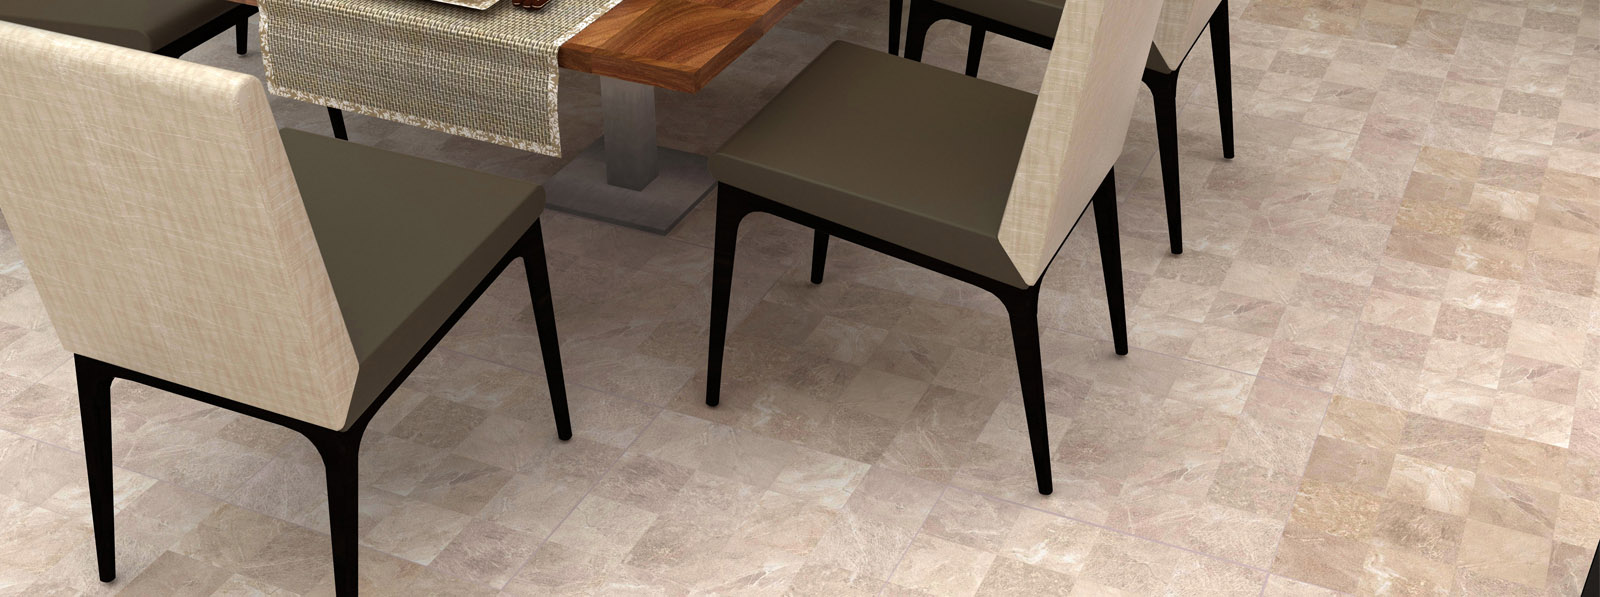 Mariwasa siam ceramics inc full hd tiles philippines other kitchen inspiration living room dailygadgetfo Gallery